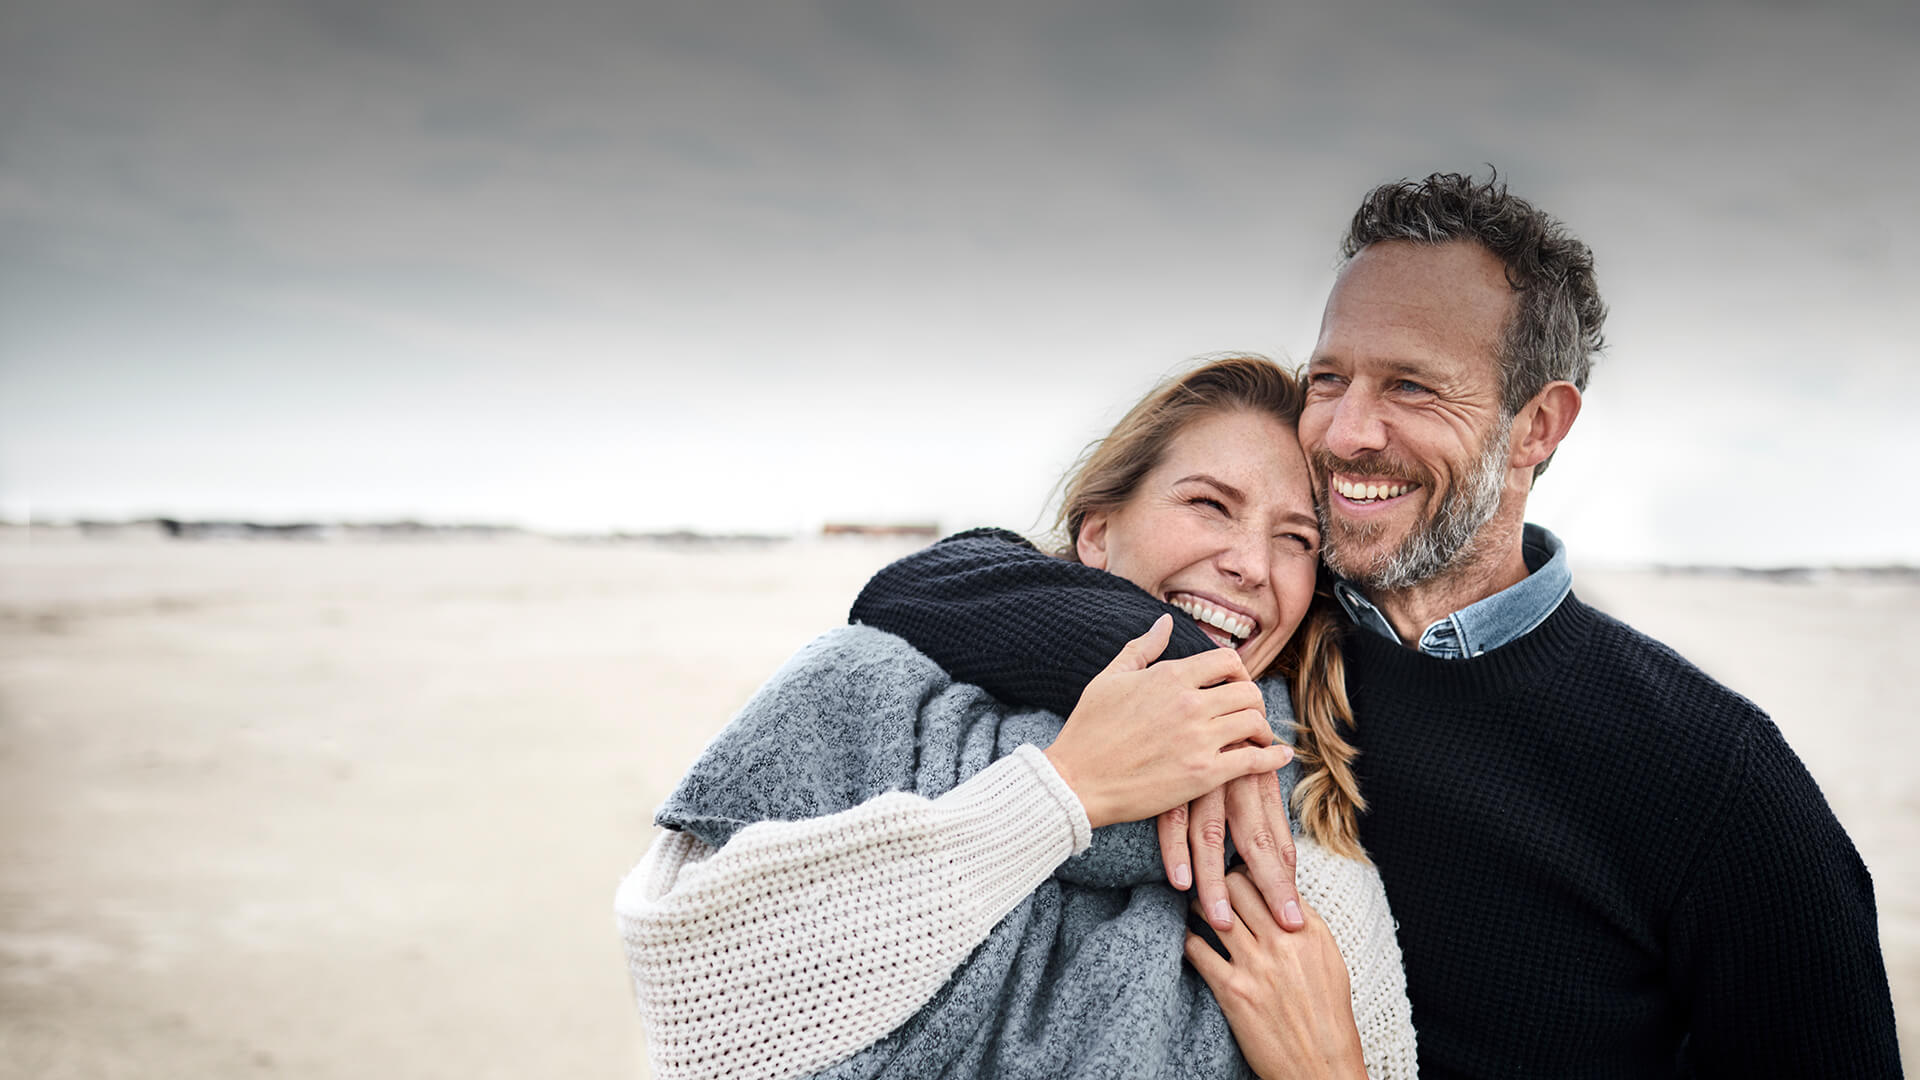 Catholic dating in Australia symbolized by a man who hold a woman in his arms at the beach